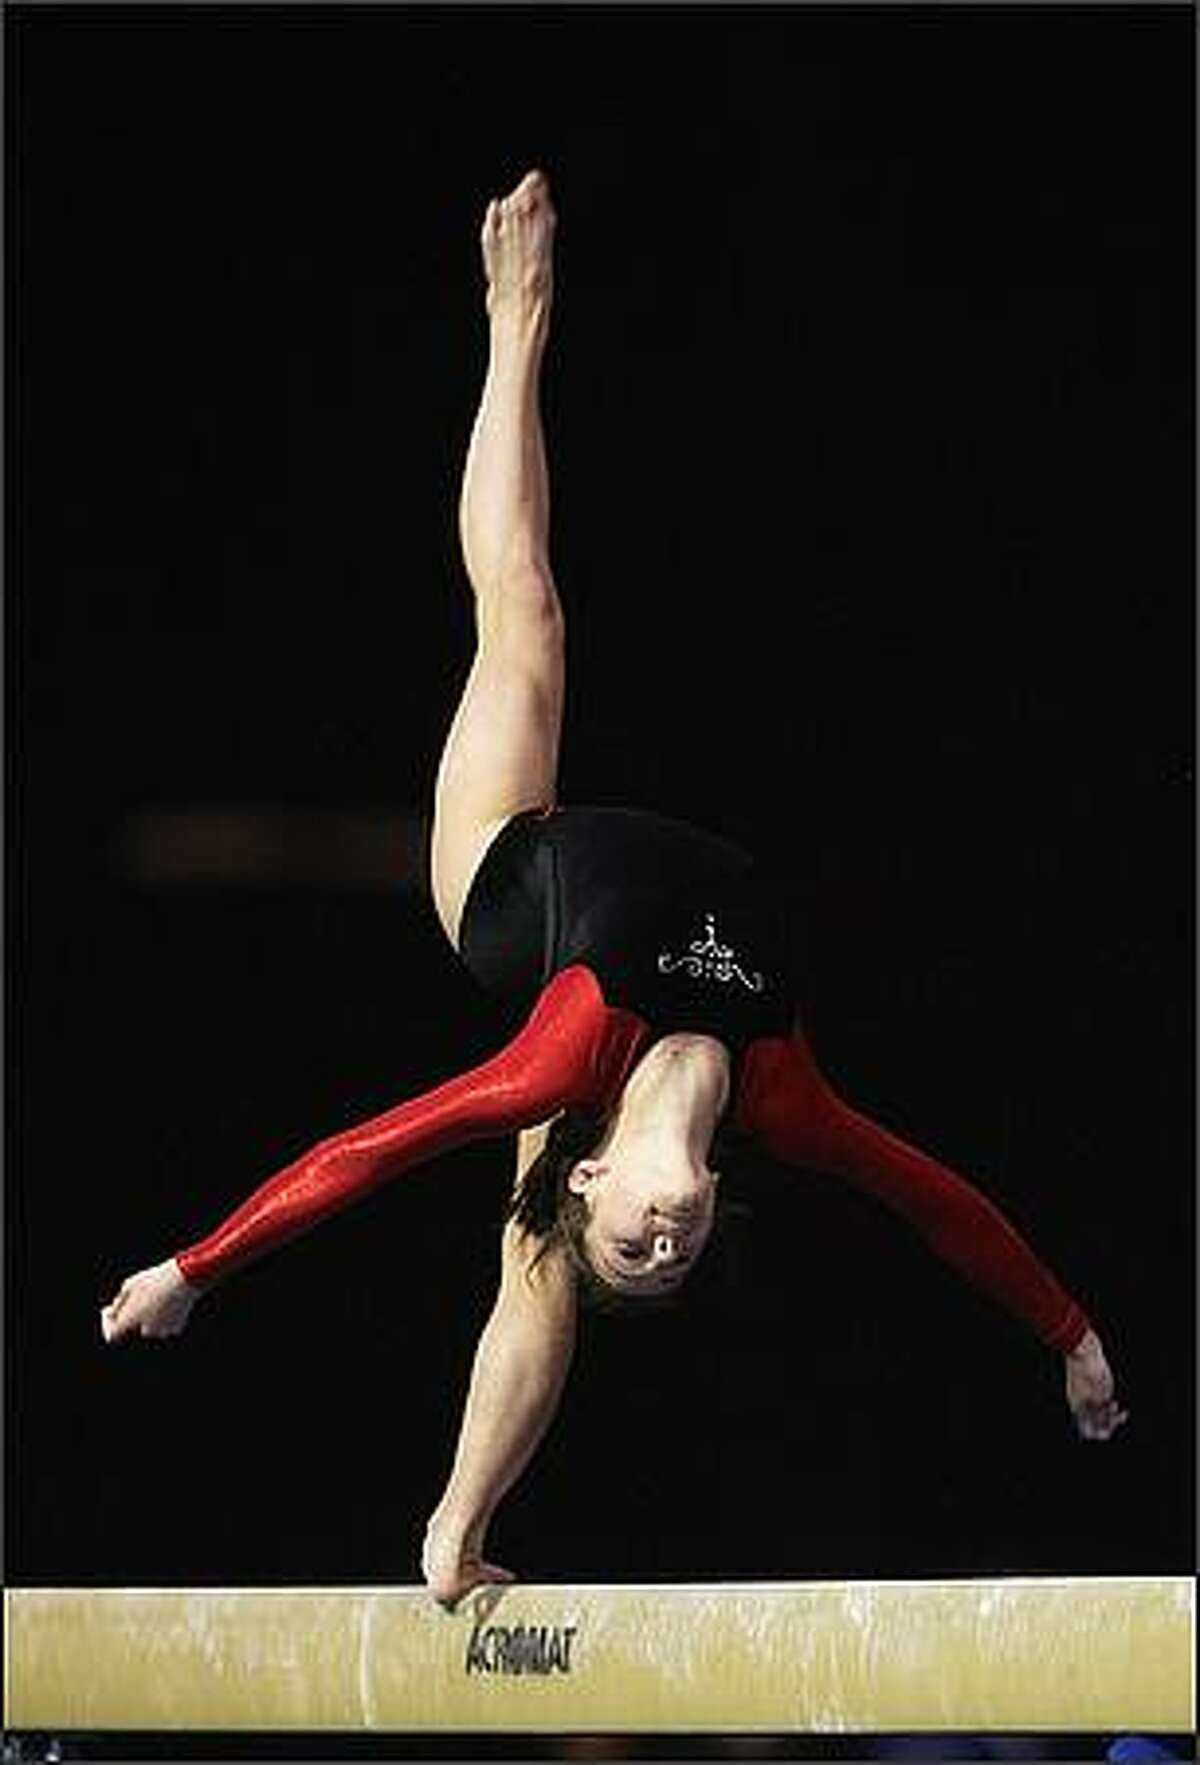 Ashleigh Wade of Canterbury competes on the beam during the 2008 National Gymsports Championships at Mystery Creek on September 30, 2008 in Hamilton, New Zealand. (Photo by Sandra Mu/Getty Images)